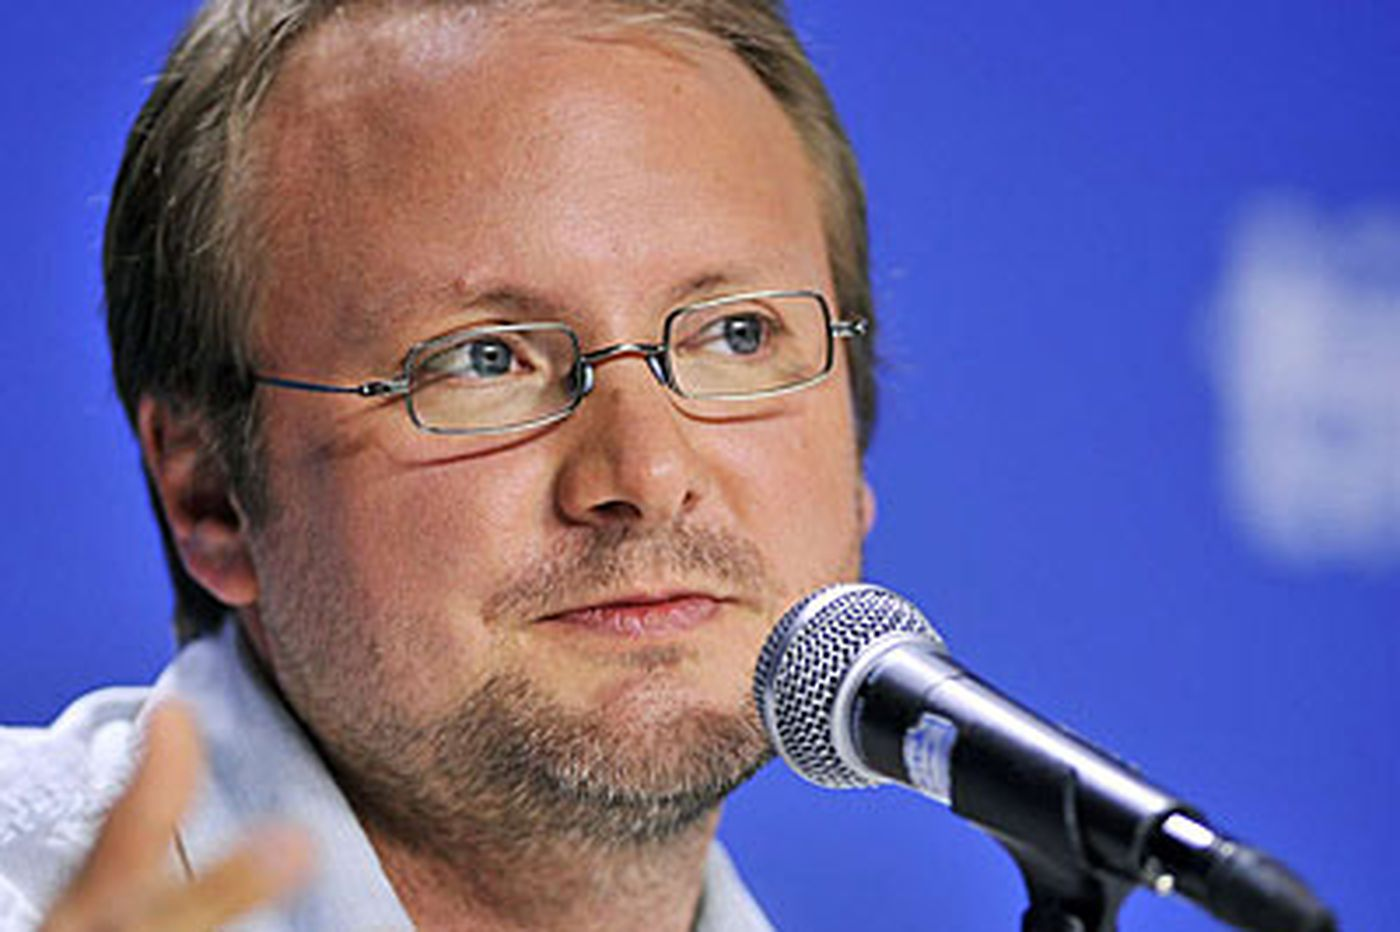 Rian Johnson, 'Looper' director, seeks to combine indie cred with blockbuster